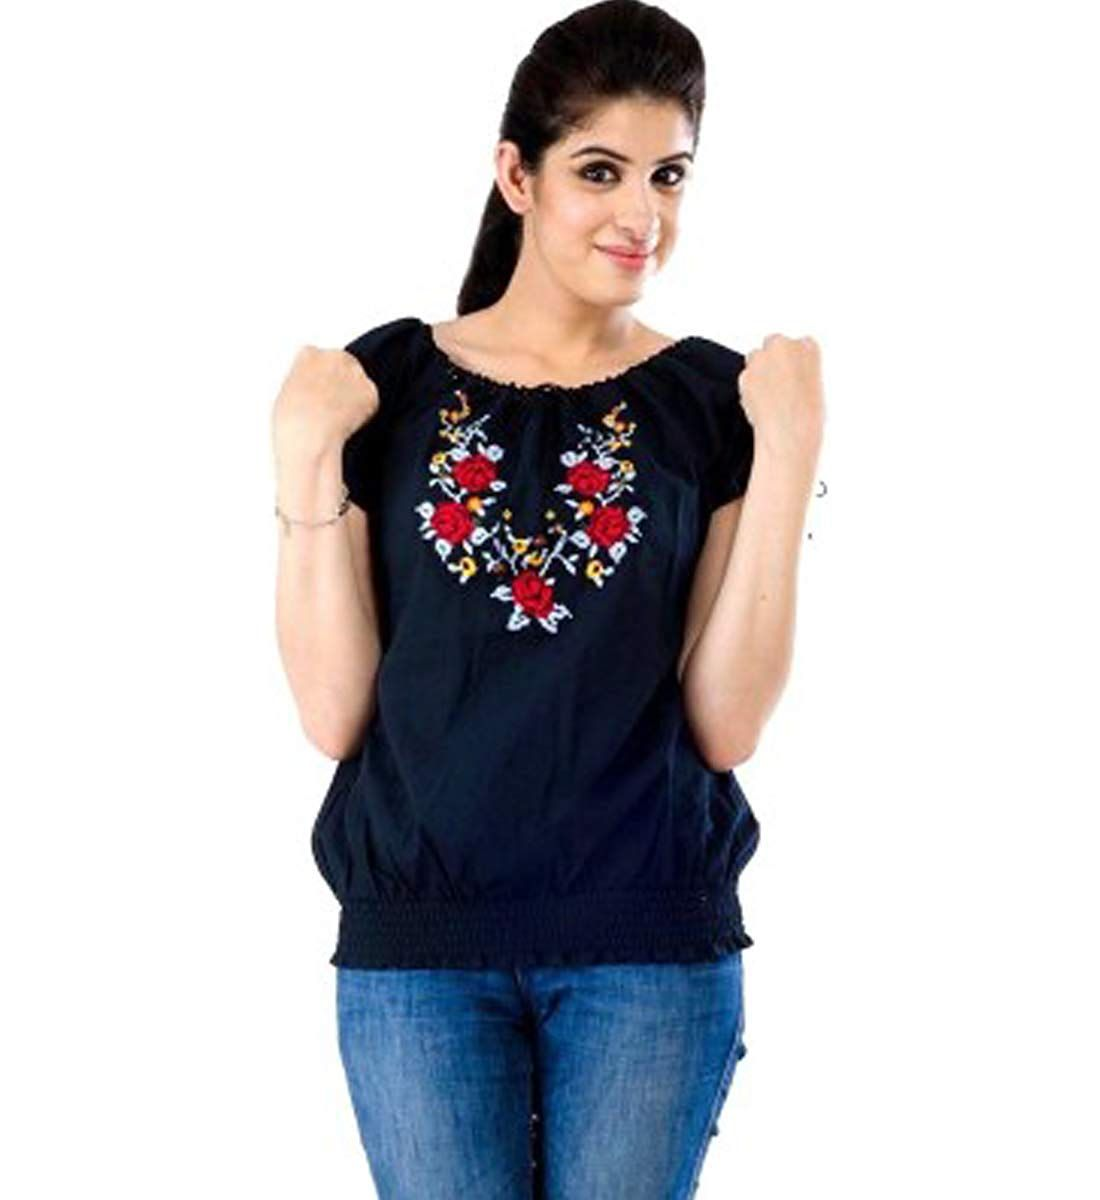 a6d4a35478e Department  Women Fit  Regular Fit Disclaimer  Product Color May Slightly  Vary Due To Photographic Lighting Sources Or Your Monitor Settings.